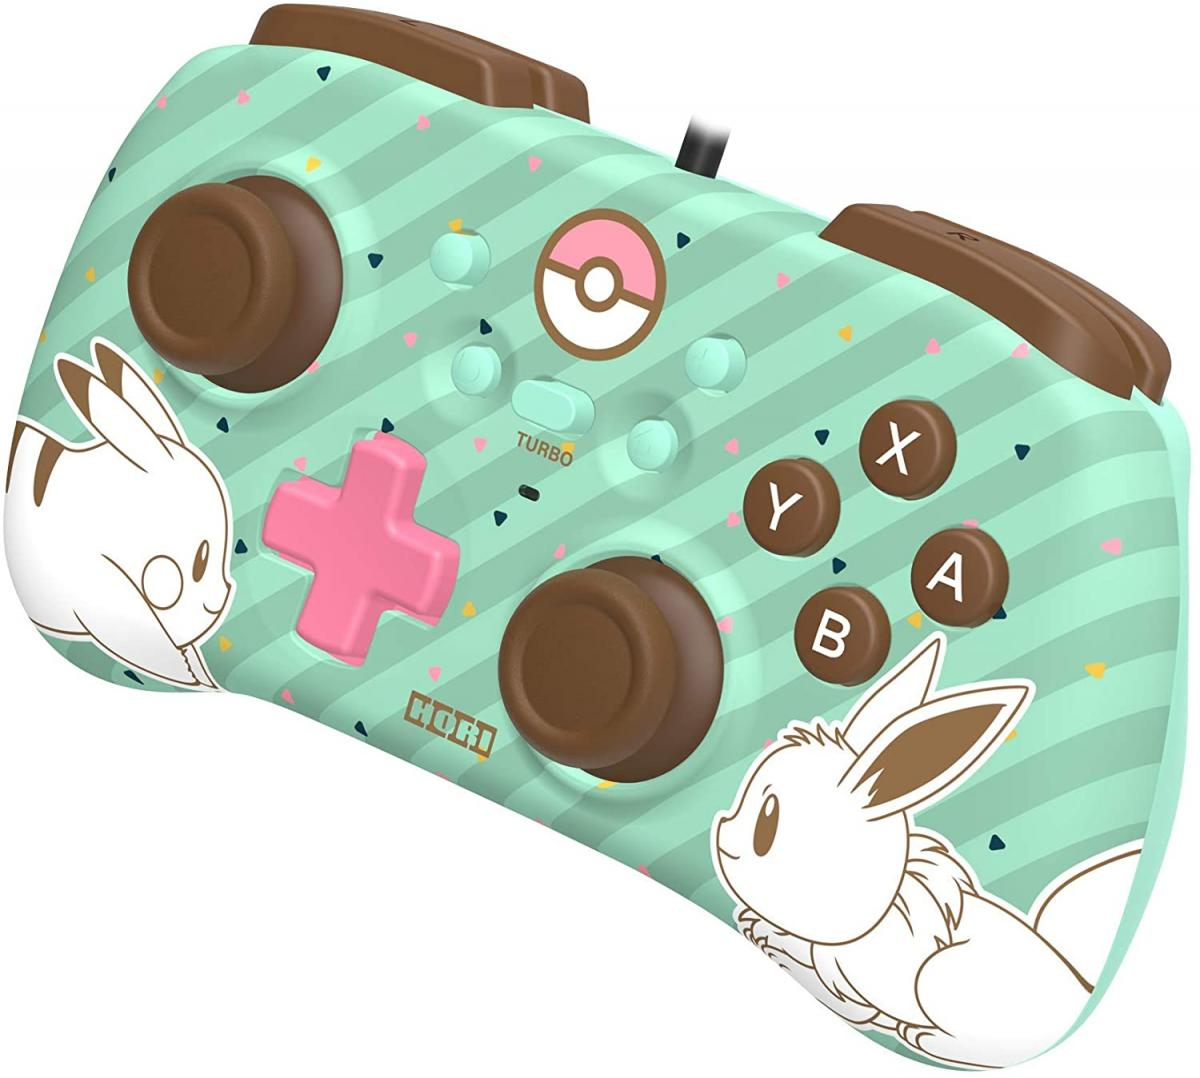 This controller for Nintendo Switch is officially licensed with a Pikachu and Eevee design and costs only 19.99 euros